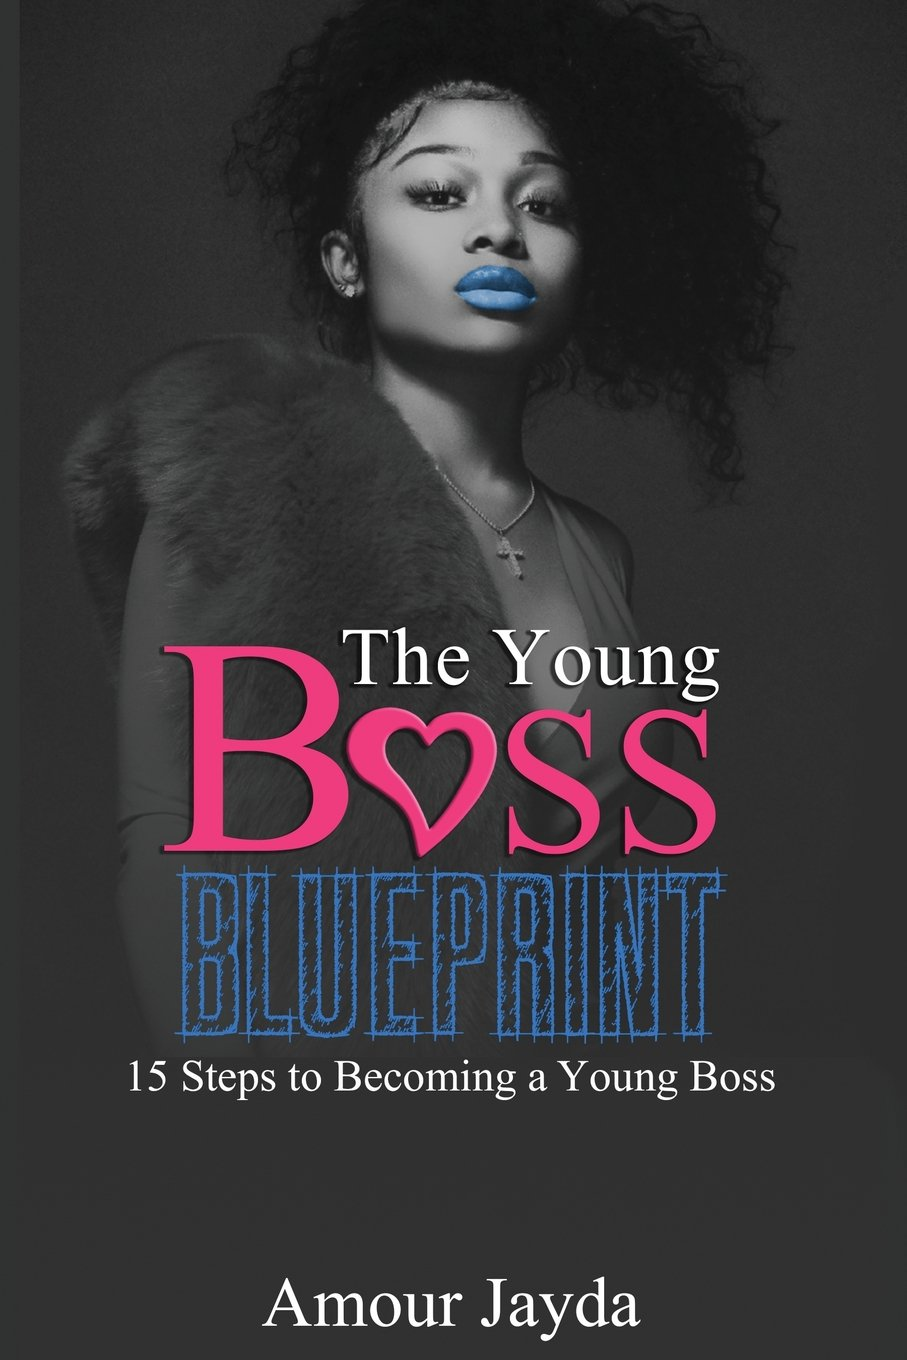 The Young Boss Blueprint: 15 Steps to Becoming a Young Boss pdf